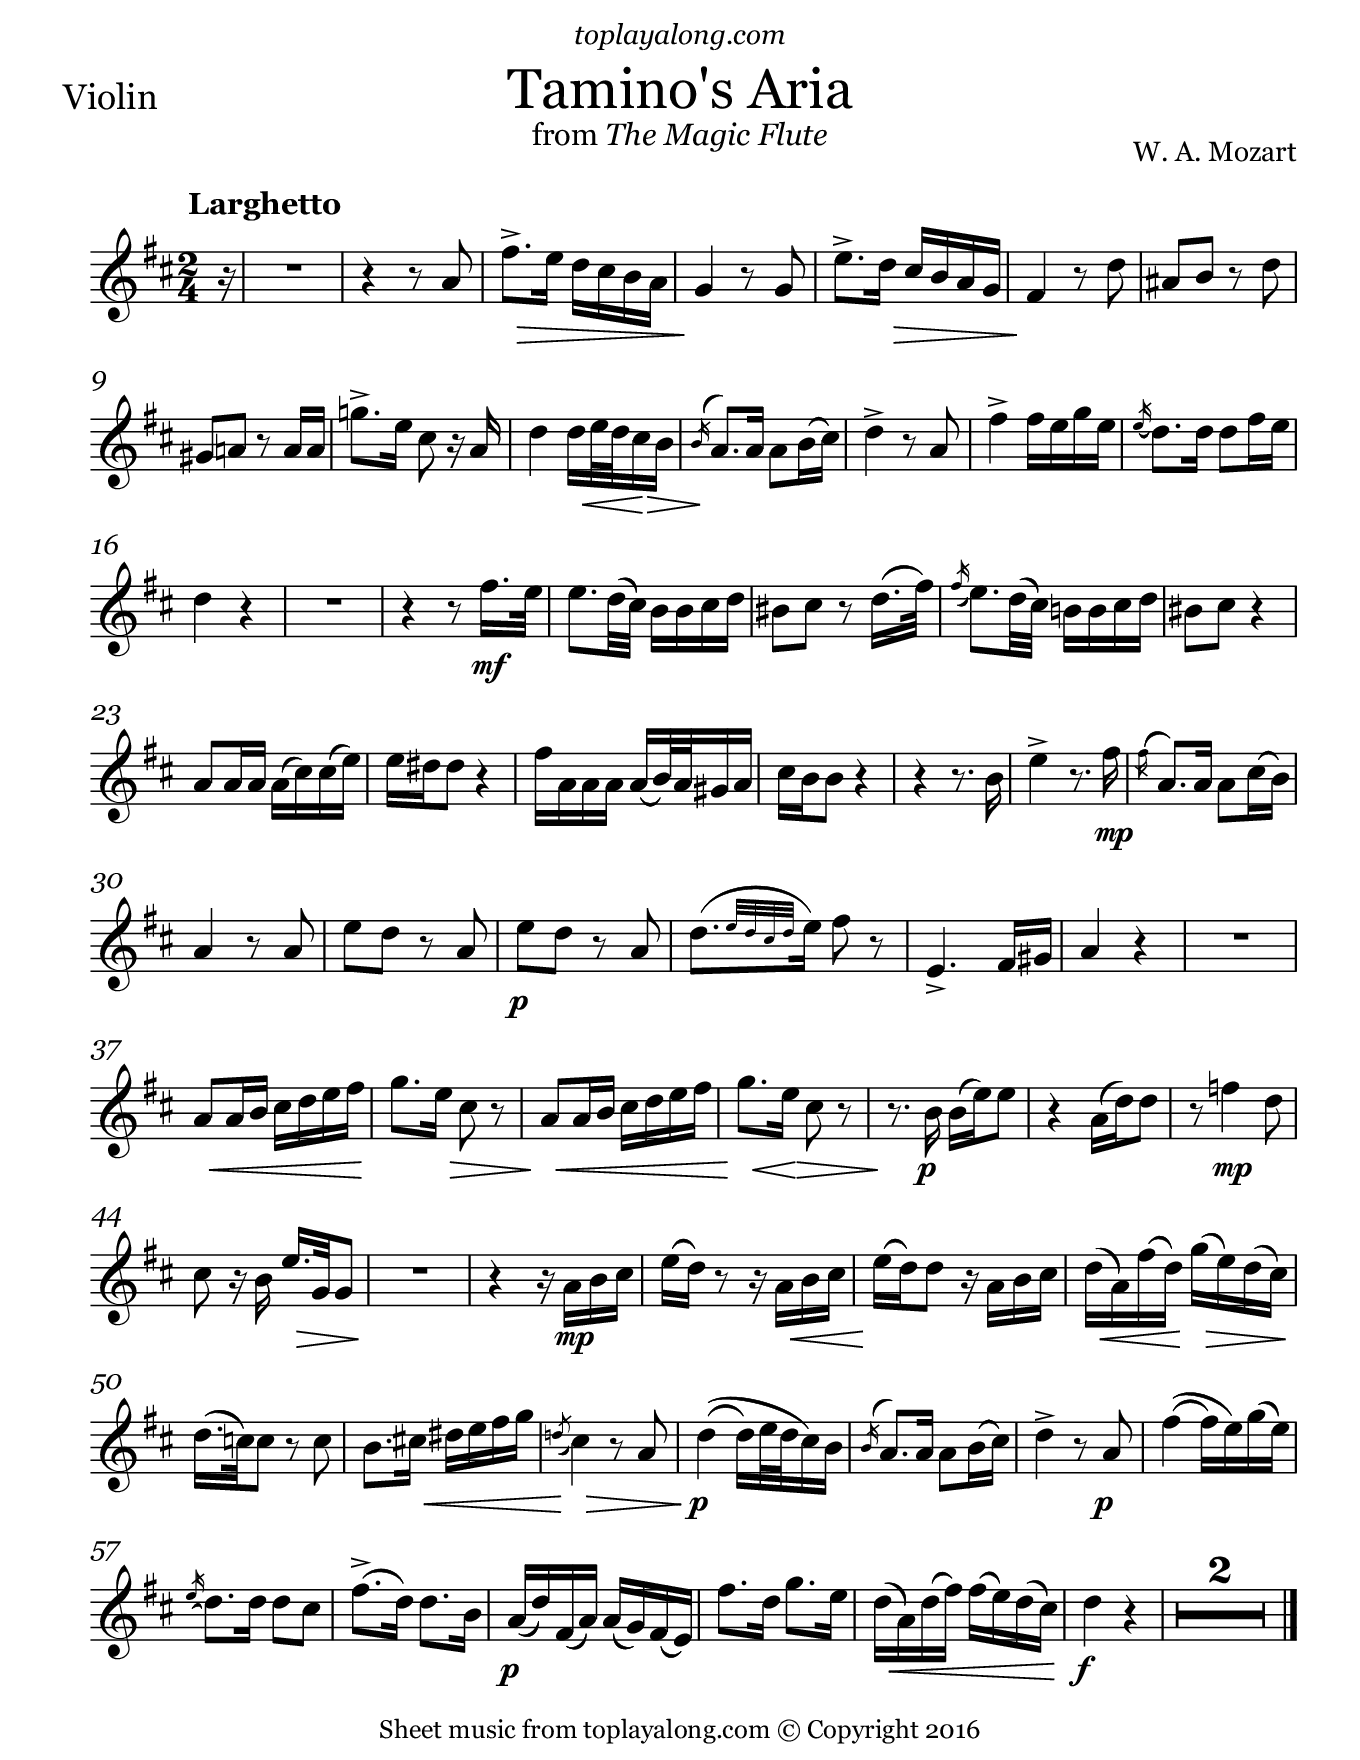 Tamino's Aria from The Magic Flute by Mozart. Sheet music for Violin, page 1.